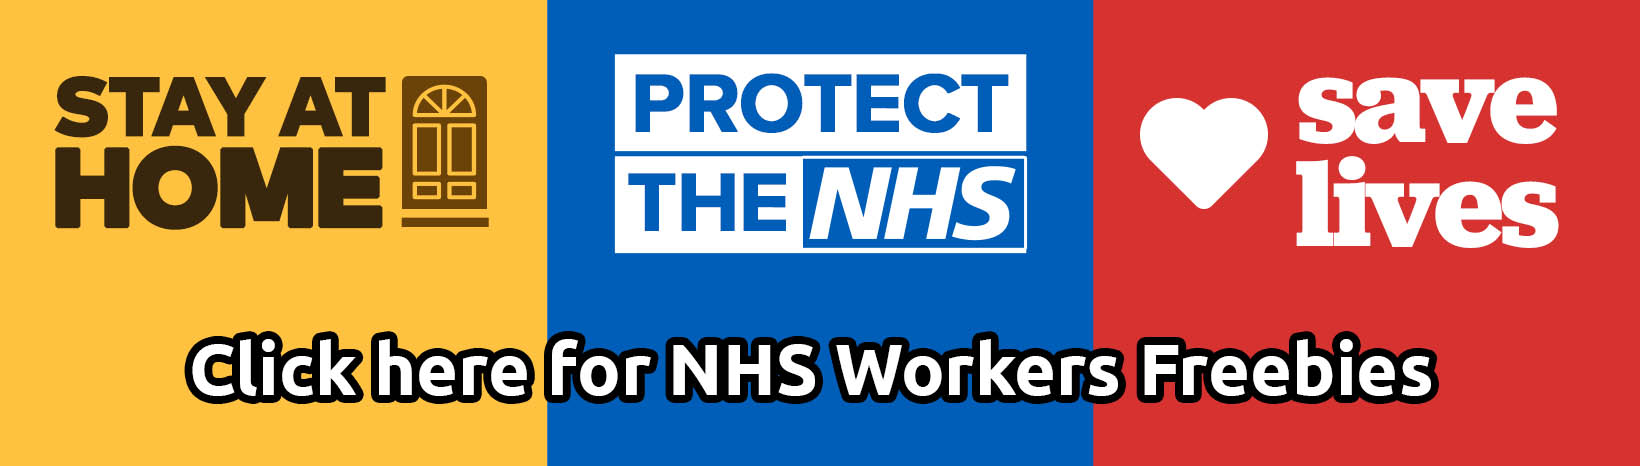 Free Stuff for NHS Workers